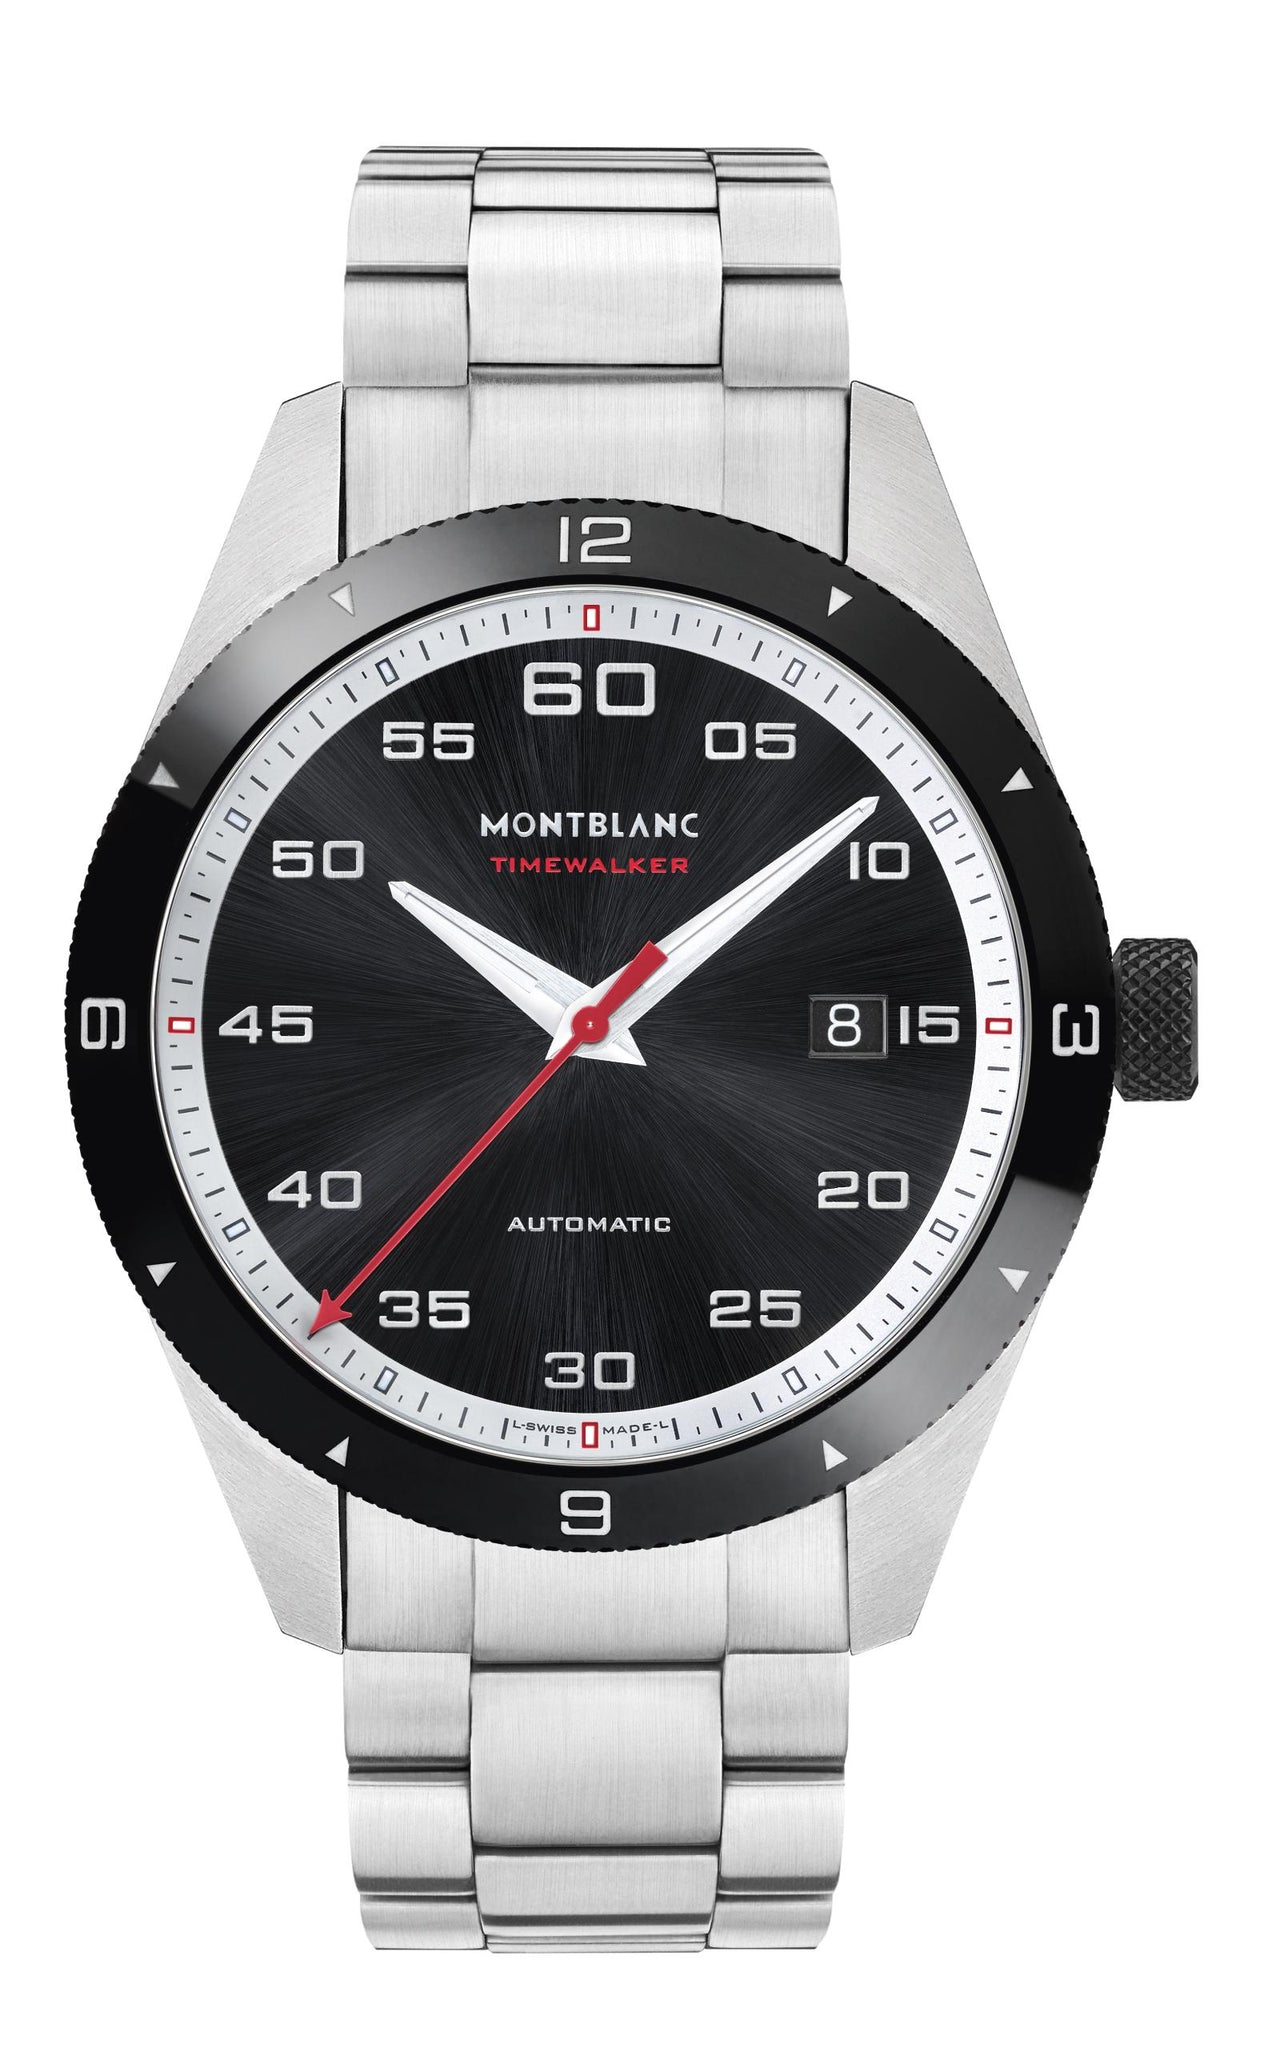 Montblanc Timewalker Automatic Date (Black Dial / 41mm)